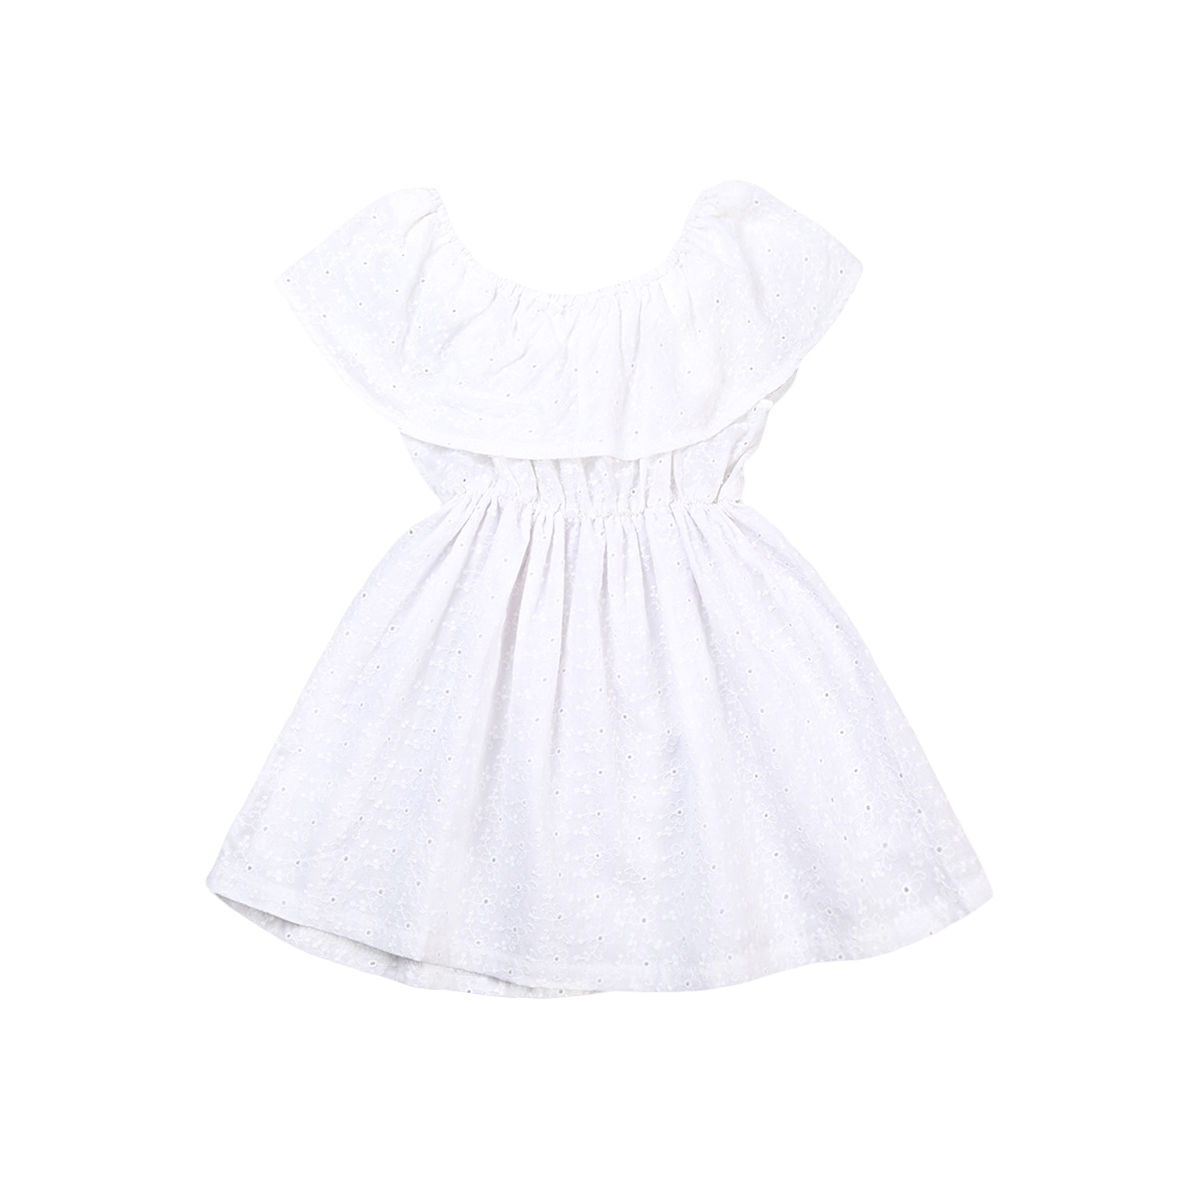 Toddler Kids Baby Girls White Ruffle Dress Off-shoulder Party Gown Formal Dress Children Princess Girl Summer Sundress Clothing 2016 newborn baby rompers cute minnie cartoon 100% cotton baby romper short sleeve infant jumpsuit boy girl baby clothing